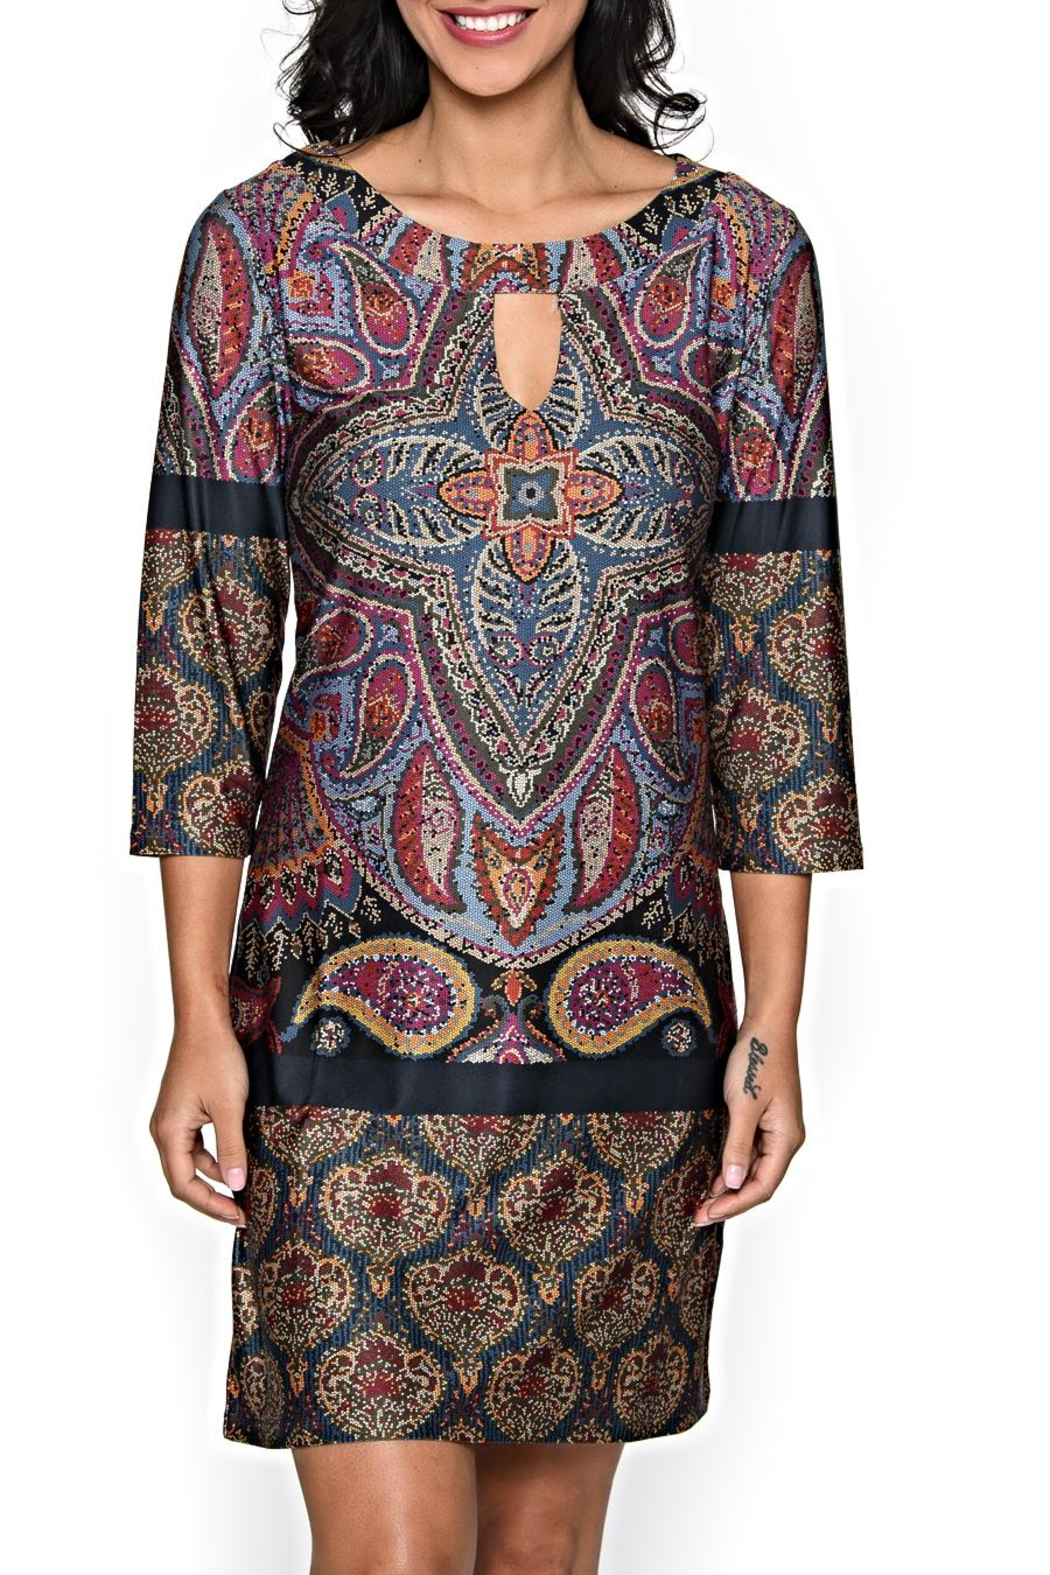 Isle Apparel Keyhole Paisley Tunic Dress - Main Image